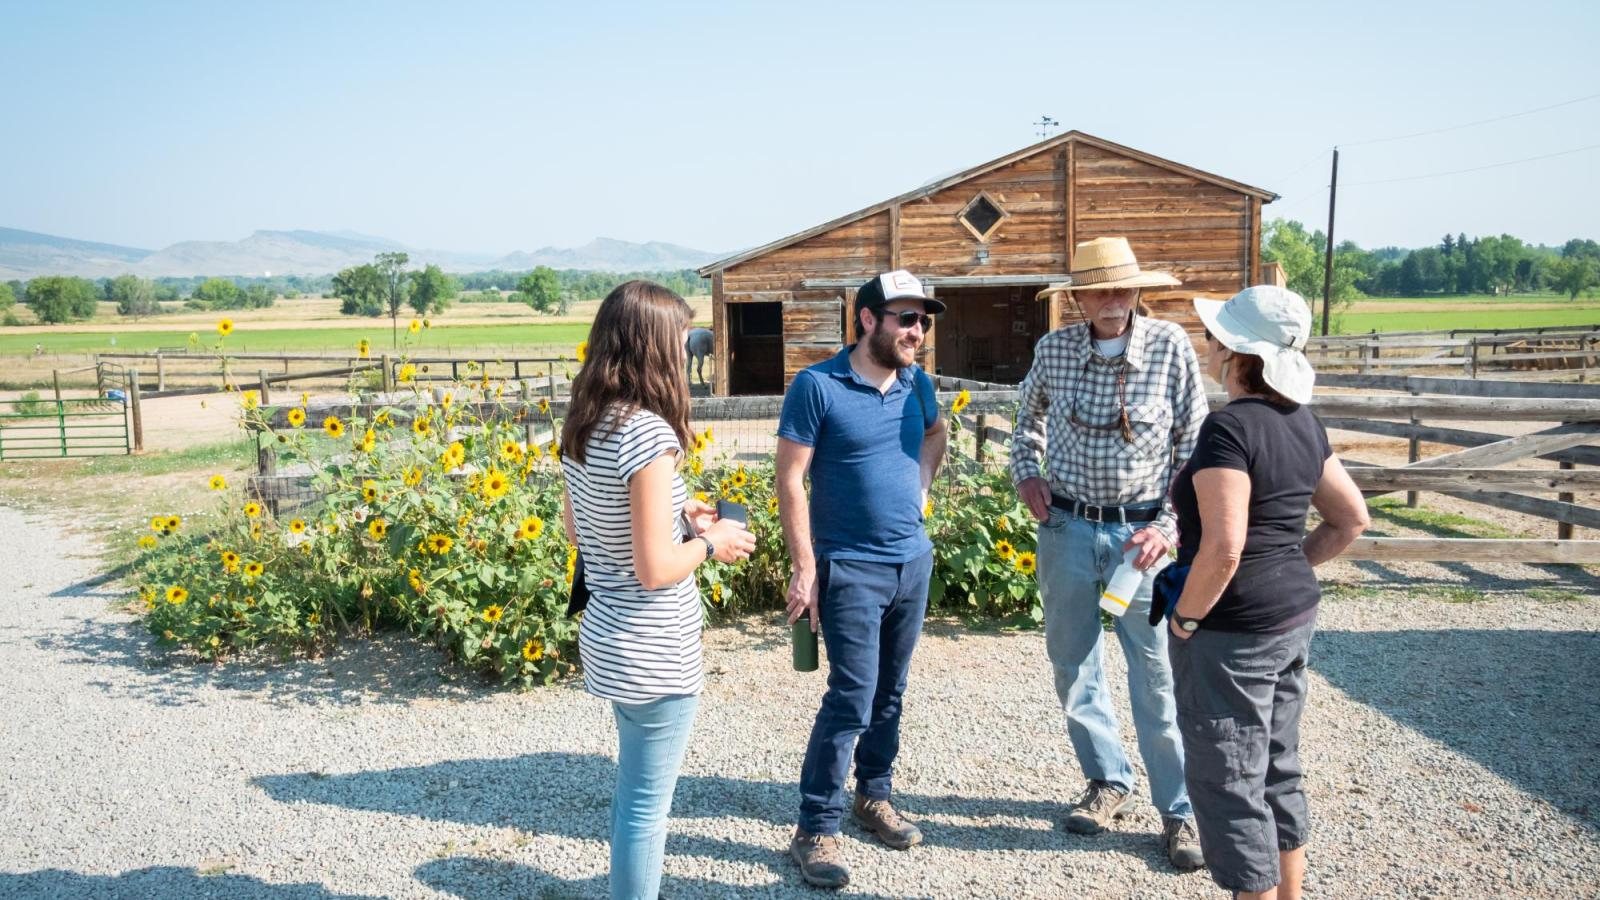 Aaron Treher and Molly McDermott speak with the Cargills at their farm.